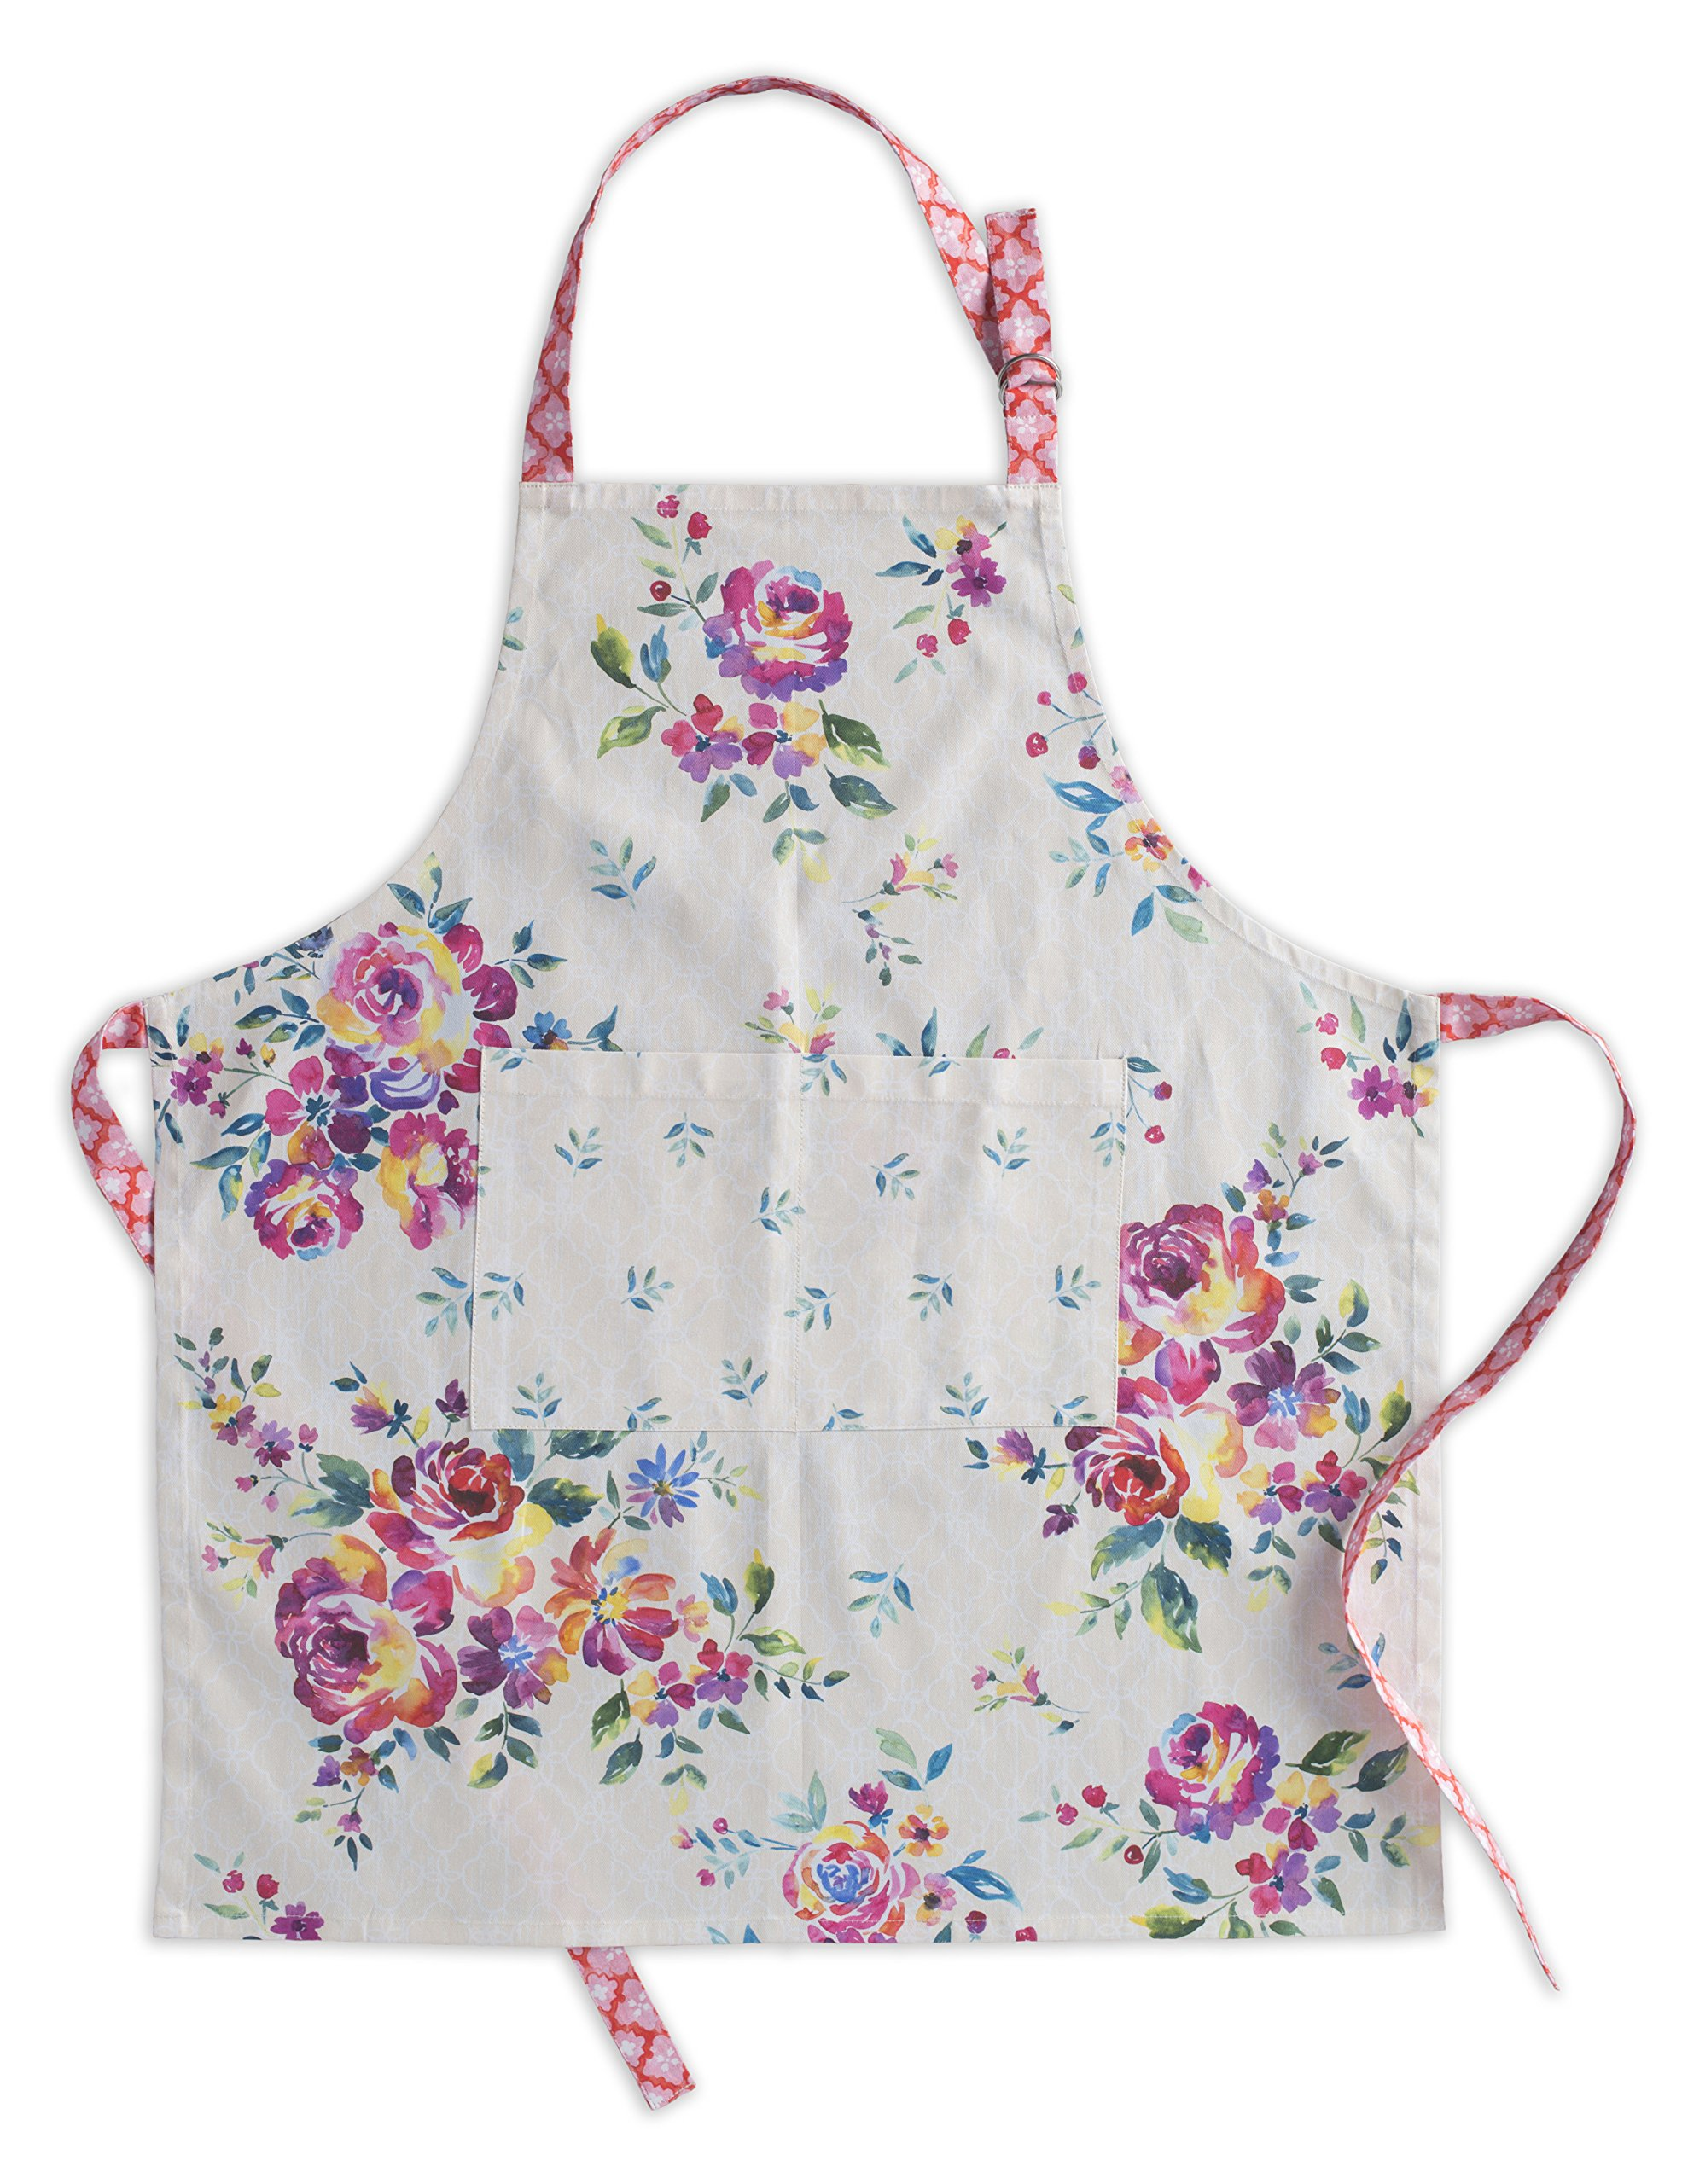 Maison d' Hermine Rose Garden 100% Cotton Apron with an adjustable neck & Visible center pocket 27.50 Inch by 31.50 Inch